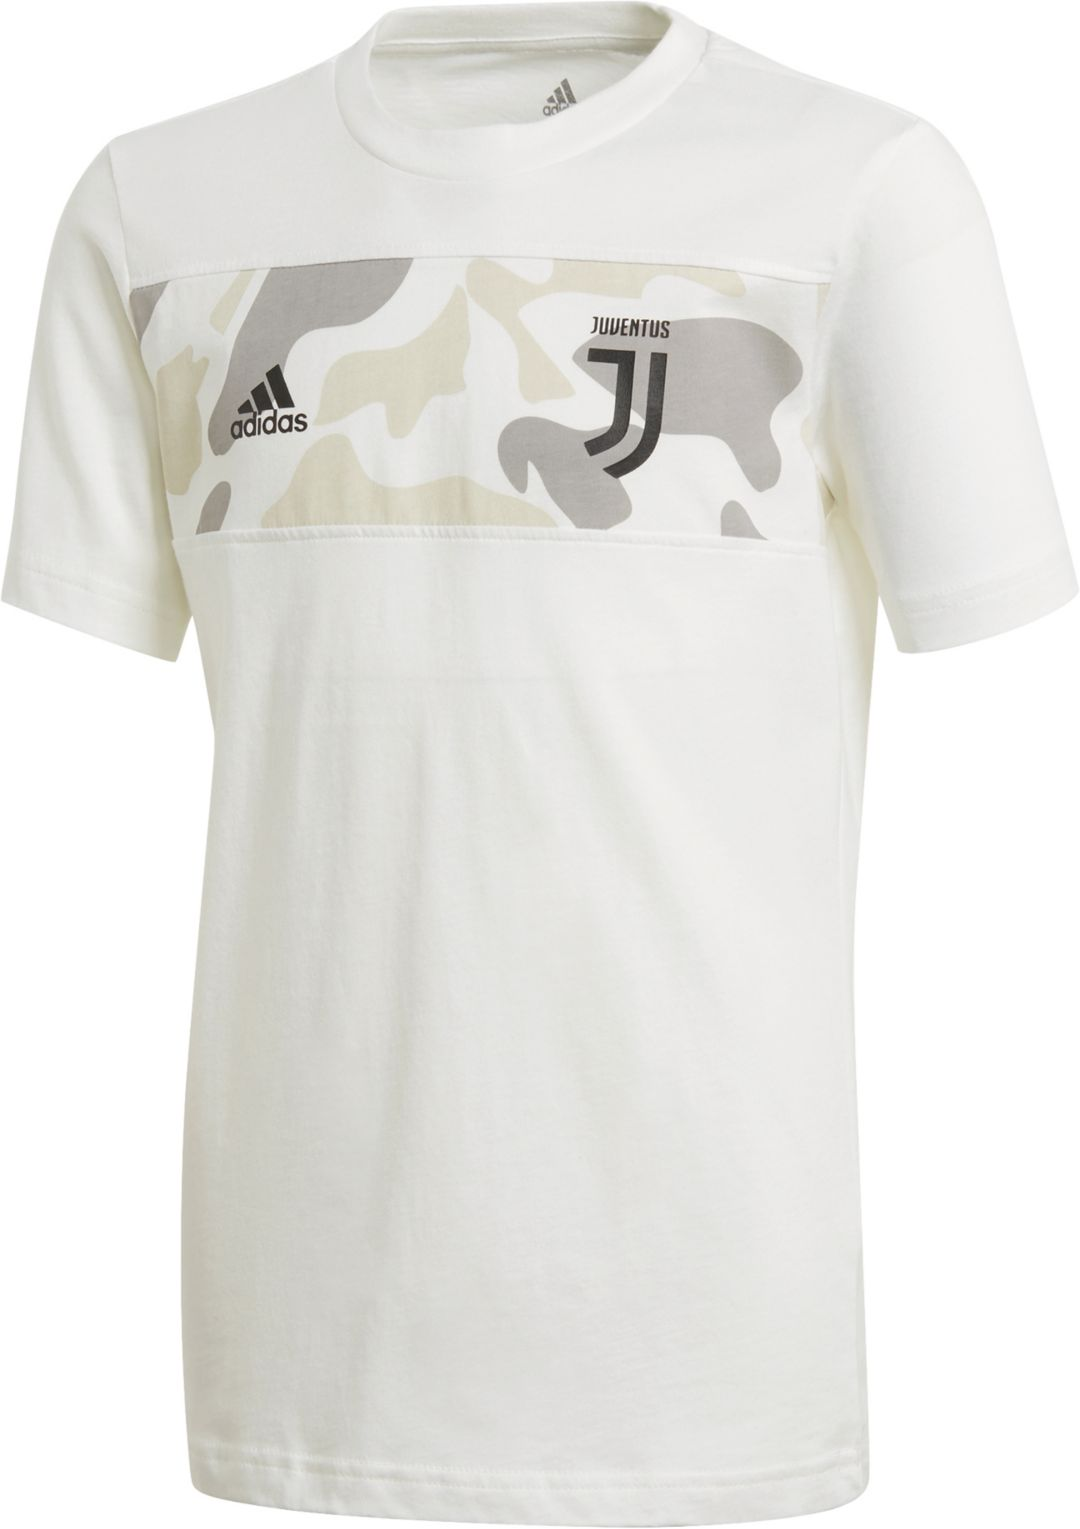 best service 4a1a8 ffb52 adidas Youth Juventus DNA Graphic White T-Shirt